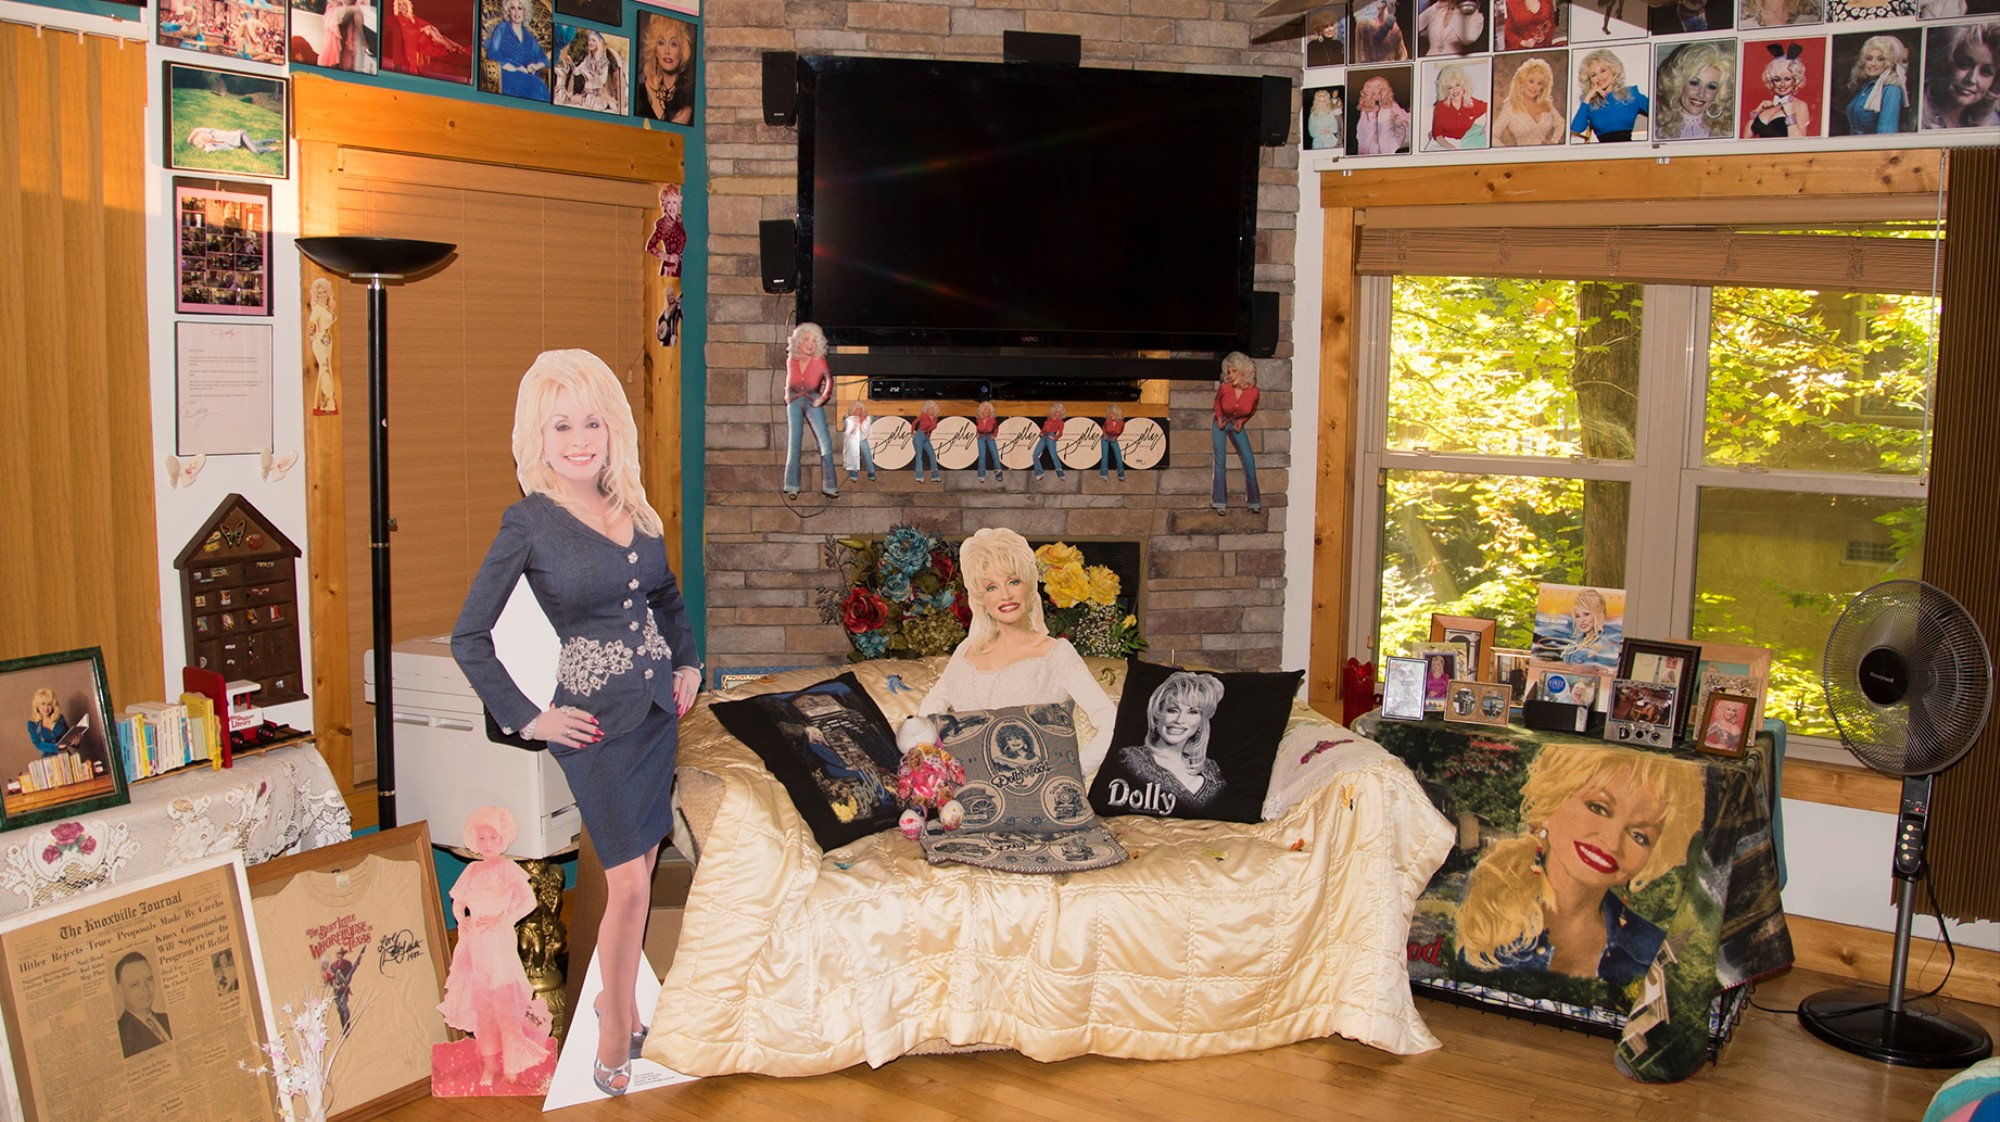 Photos Of The Land Where Dolly Parton Is Benefactor Muse